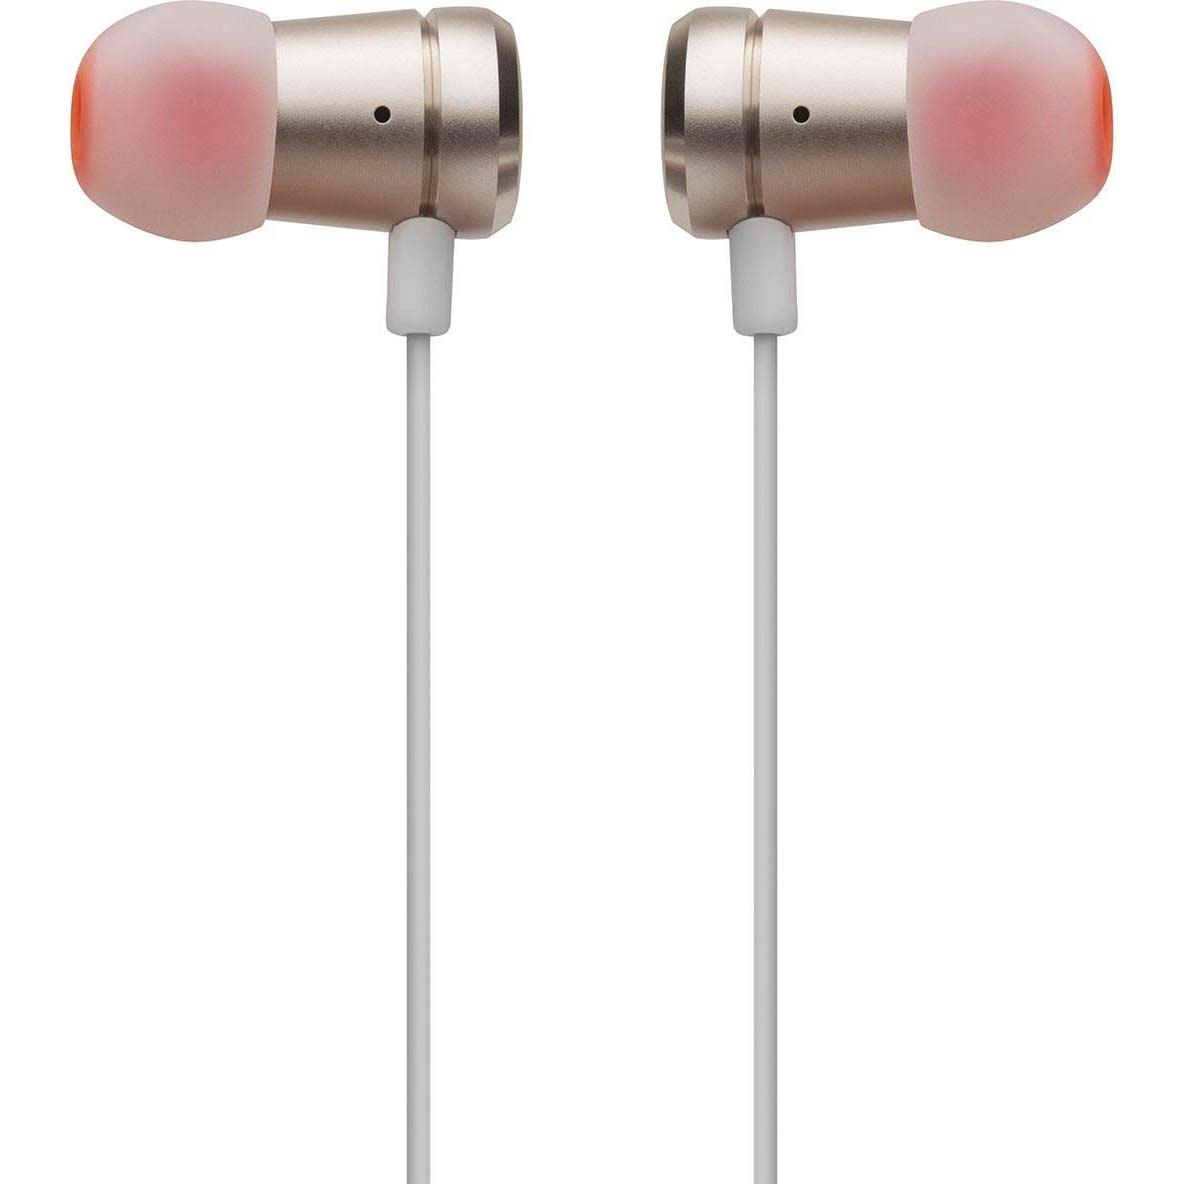 Jbl T290 Pure Bass All Metal In Ear Headphones With Mic Gold Headphone Silver Thank Deal